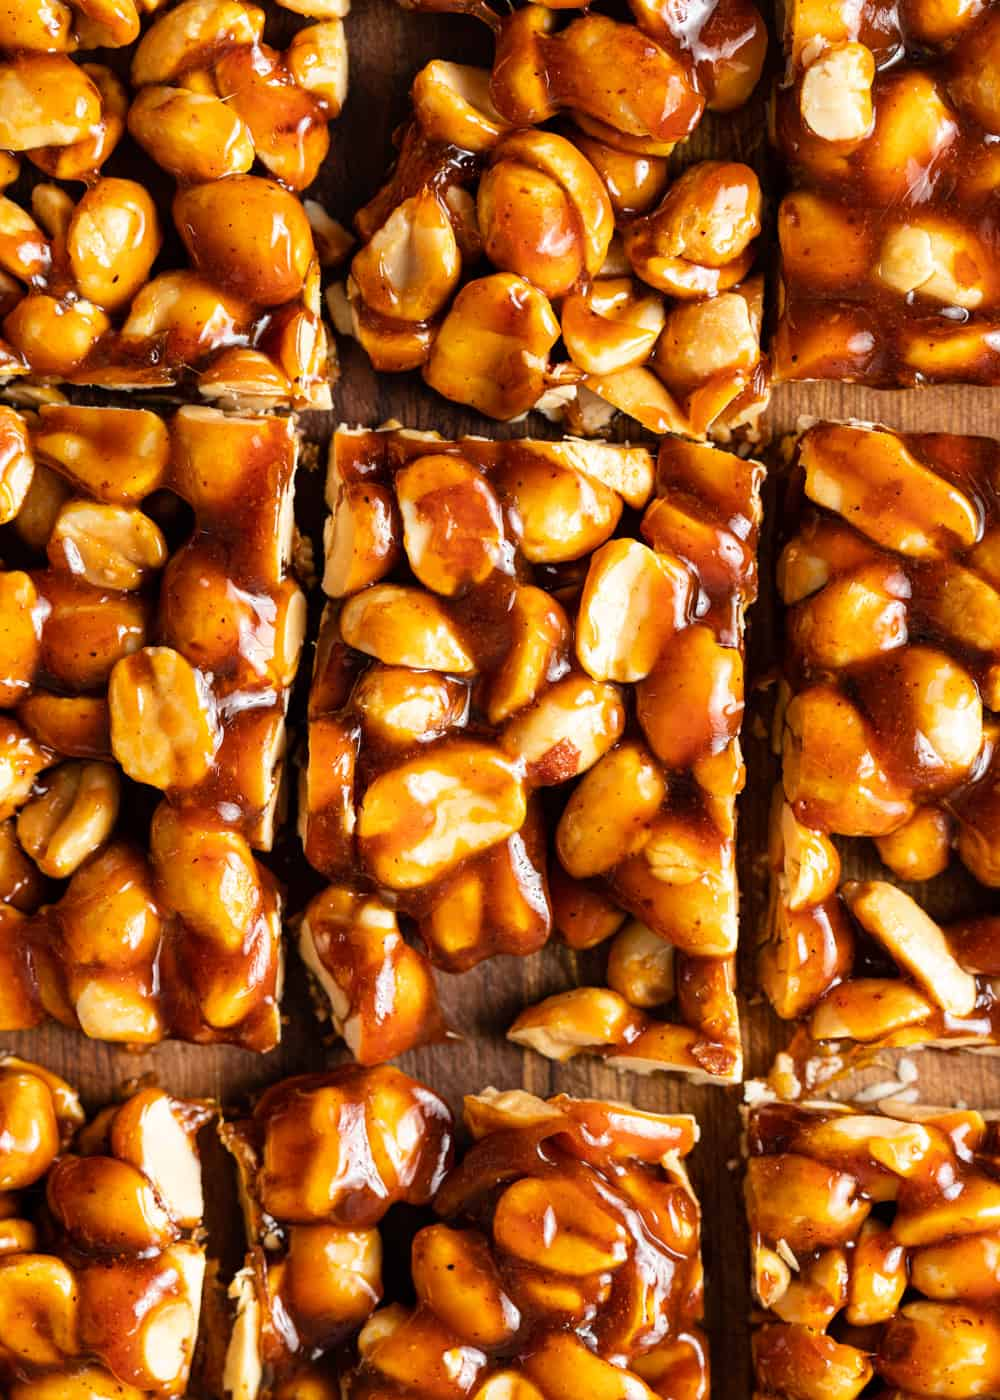 close up: squares of spicy peanut brittle